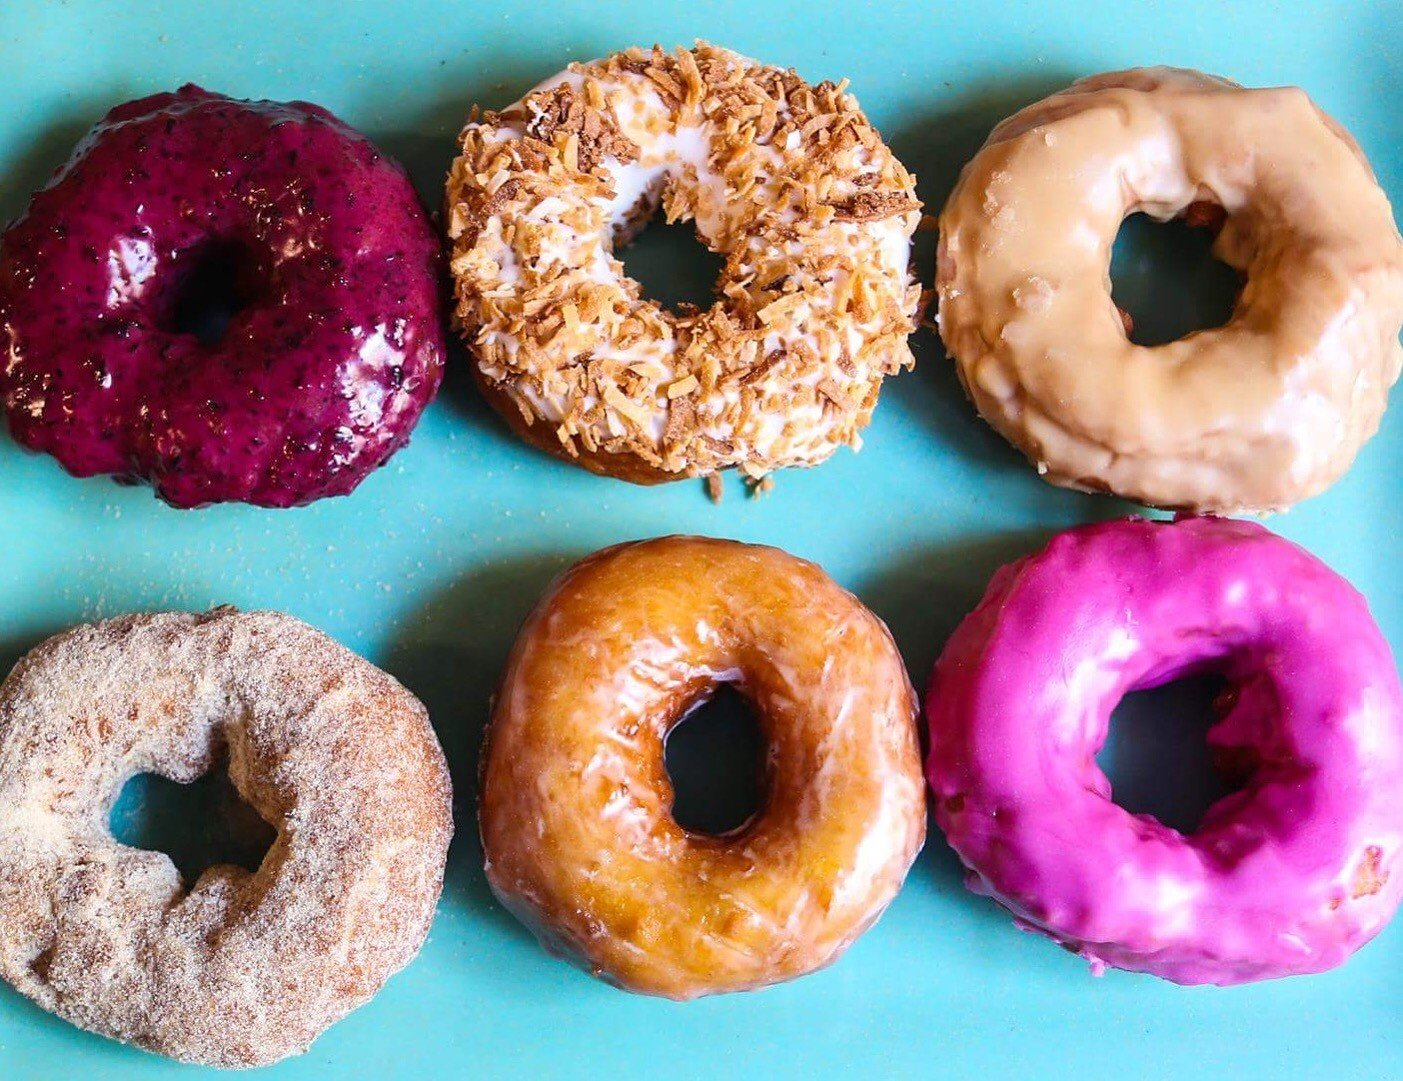 bakery comfort food dessert Dining donuts Eat food Food + Drink Health + Wellness sweets Travel Tips doughnut donut baked goods pink plain produce bagel pastry snack food assorted different few rack toppings lined colored variety